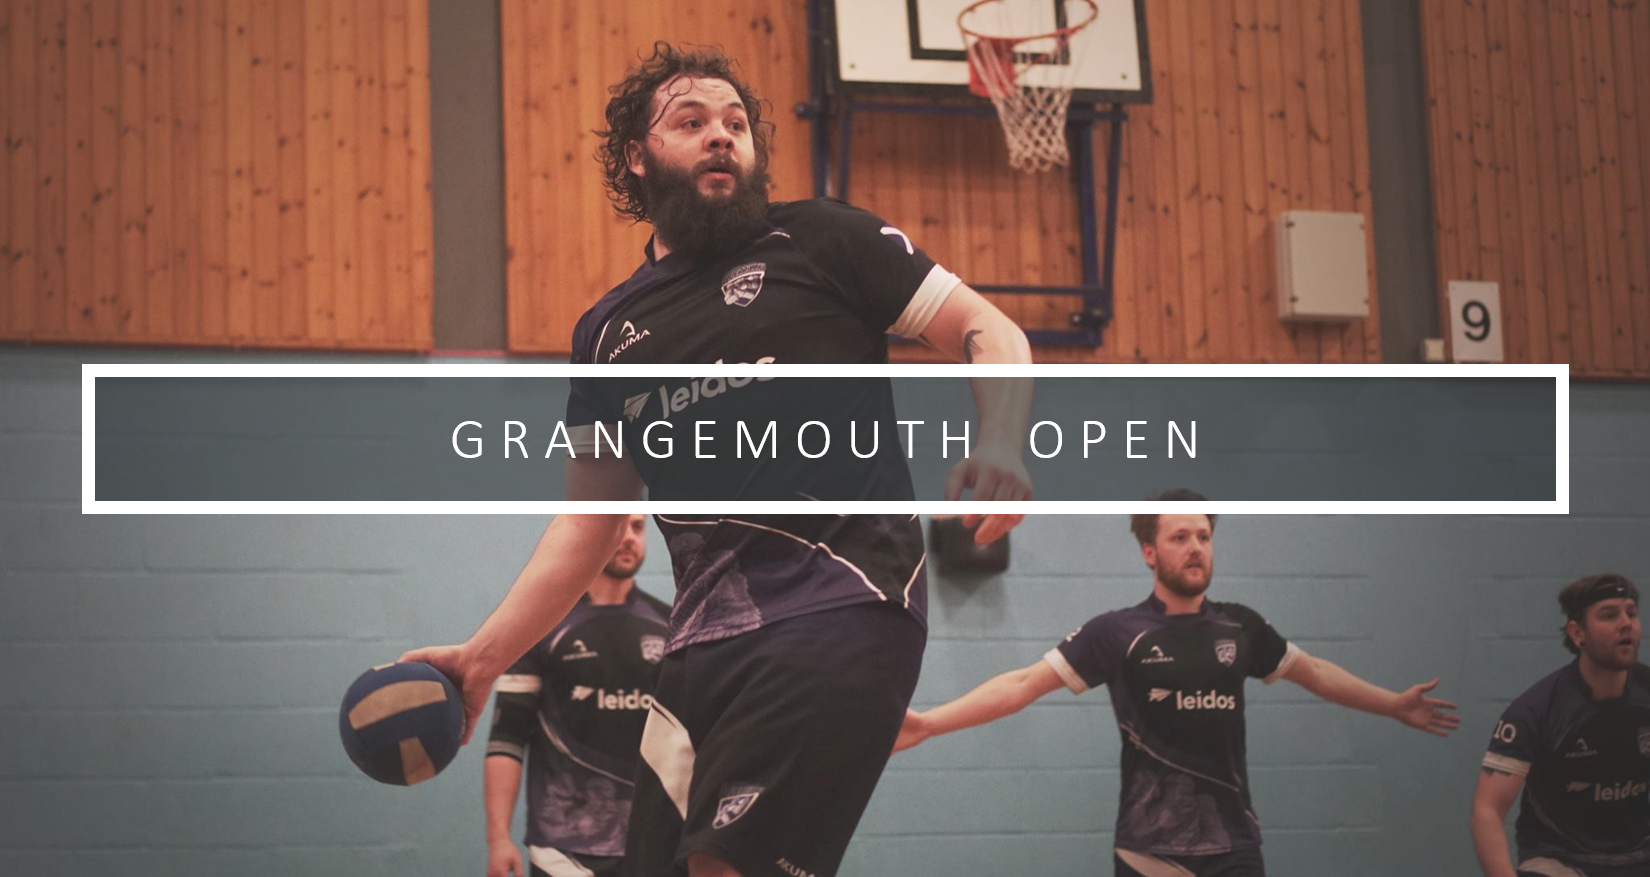 Grangemouth Open